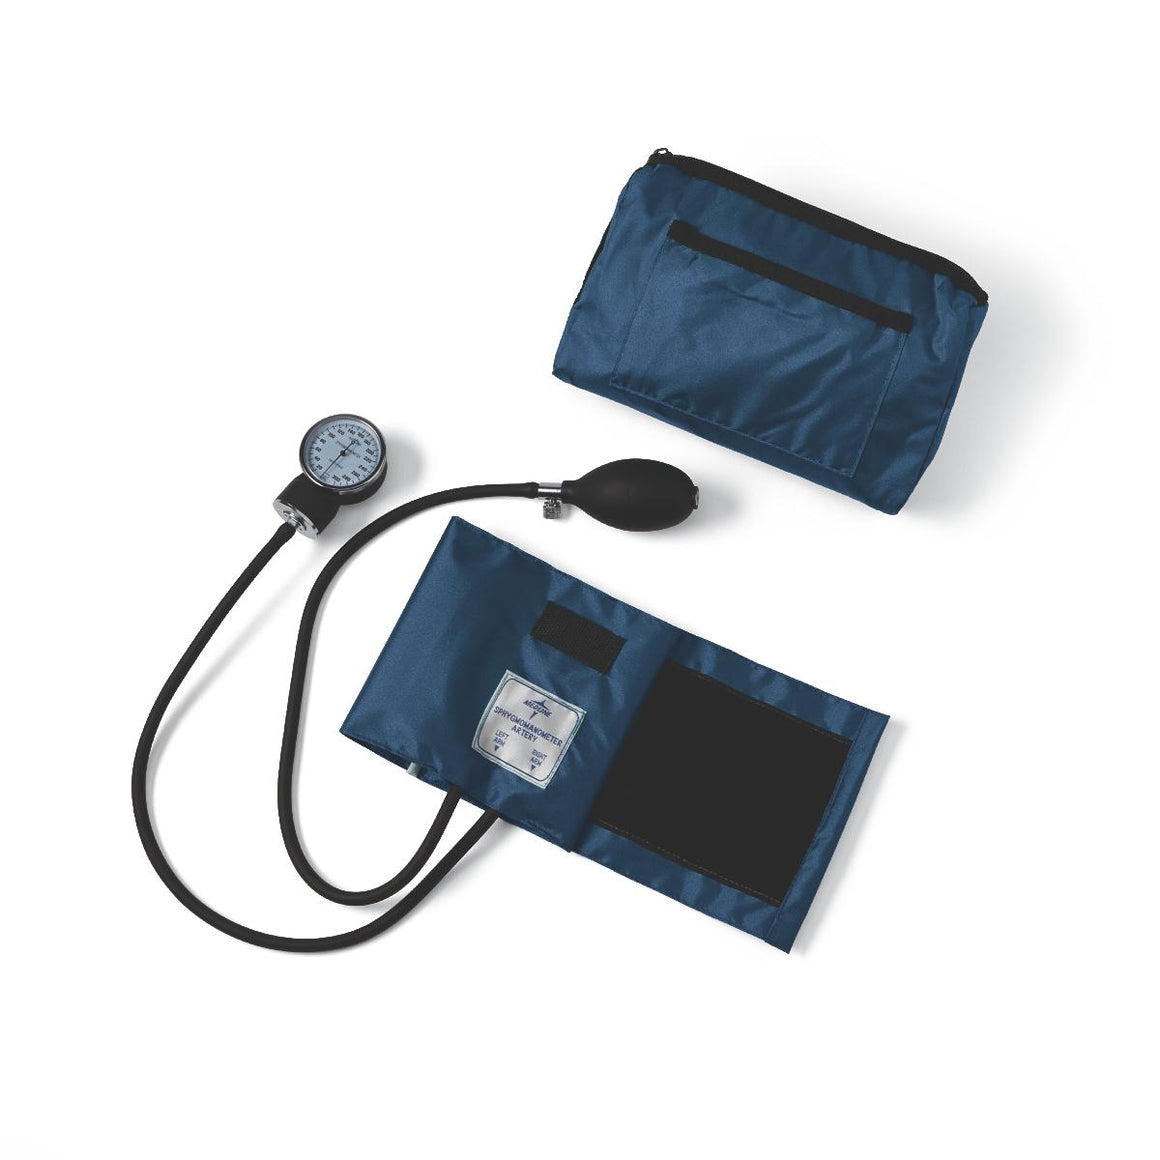 Compli-Mates Aneroid Sphygmomanometers,Navy,Adult, Each